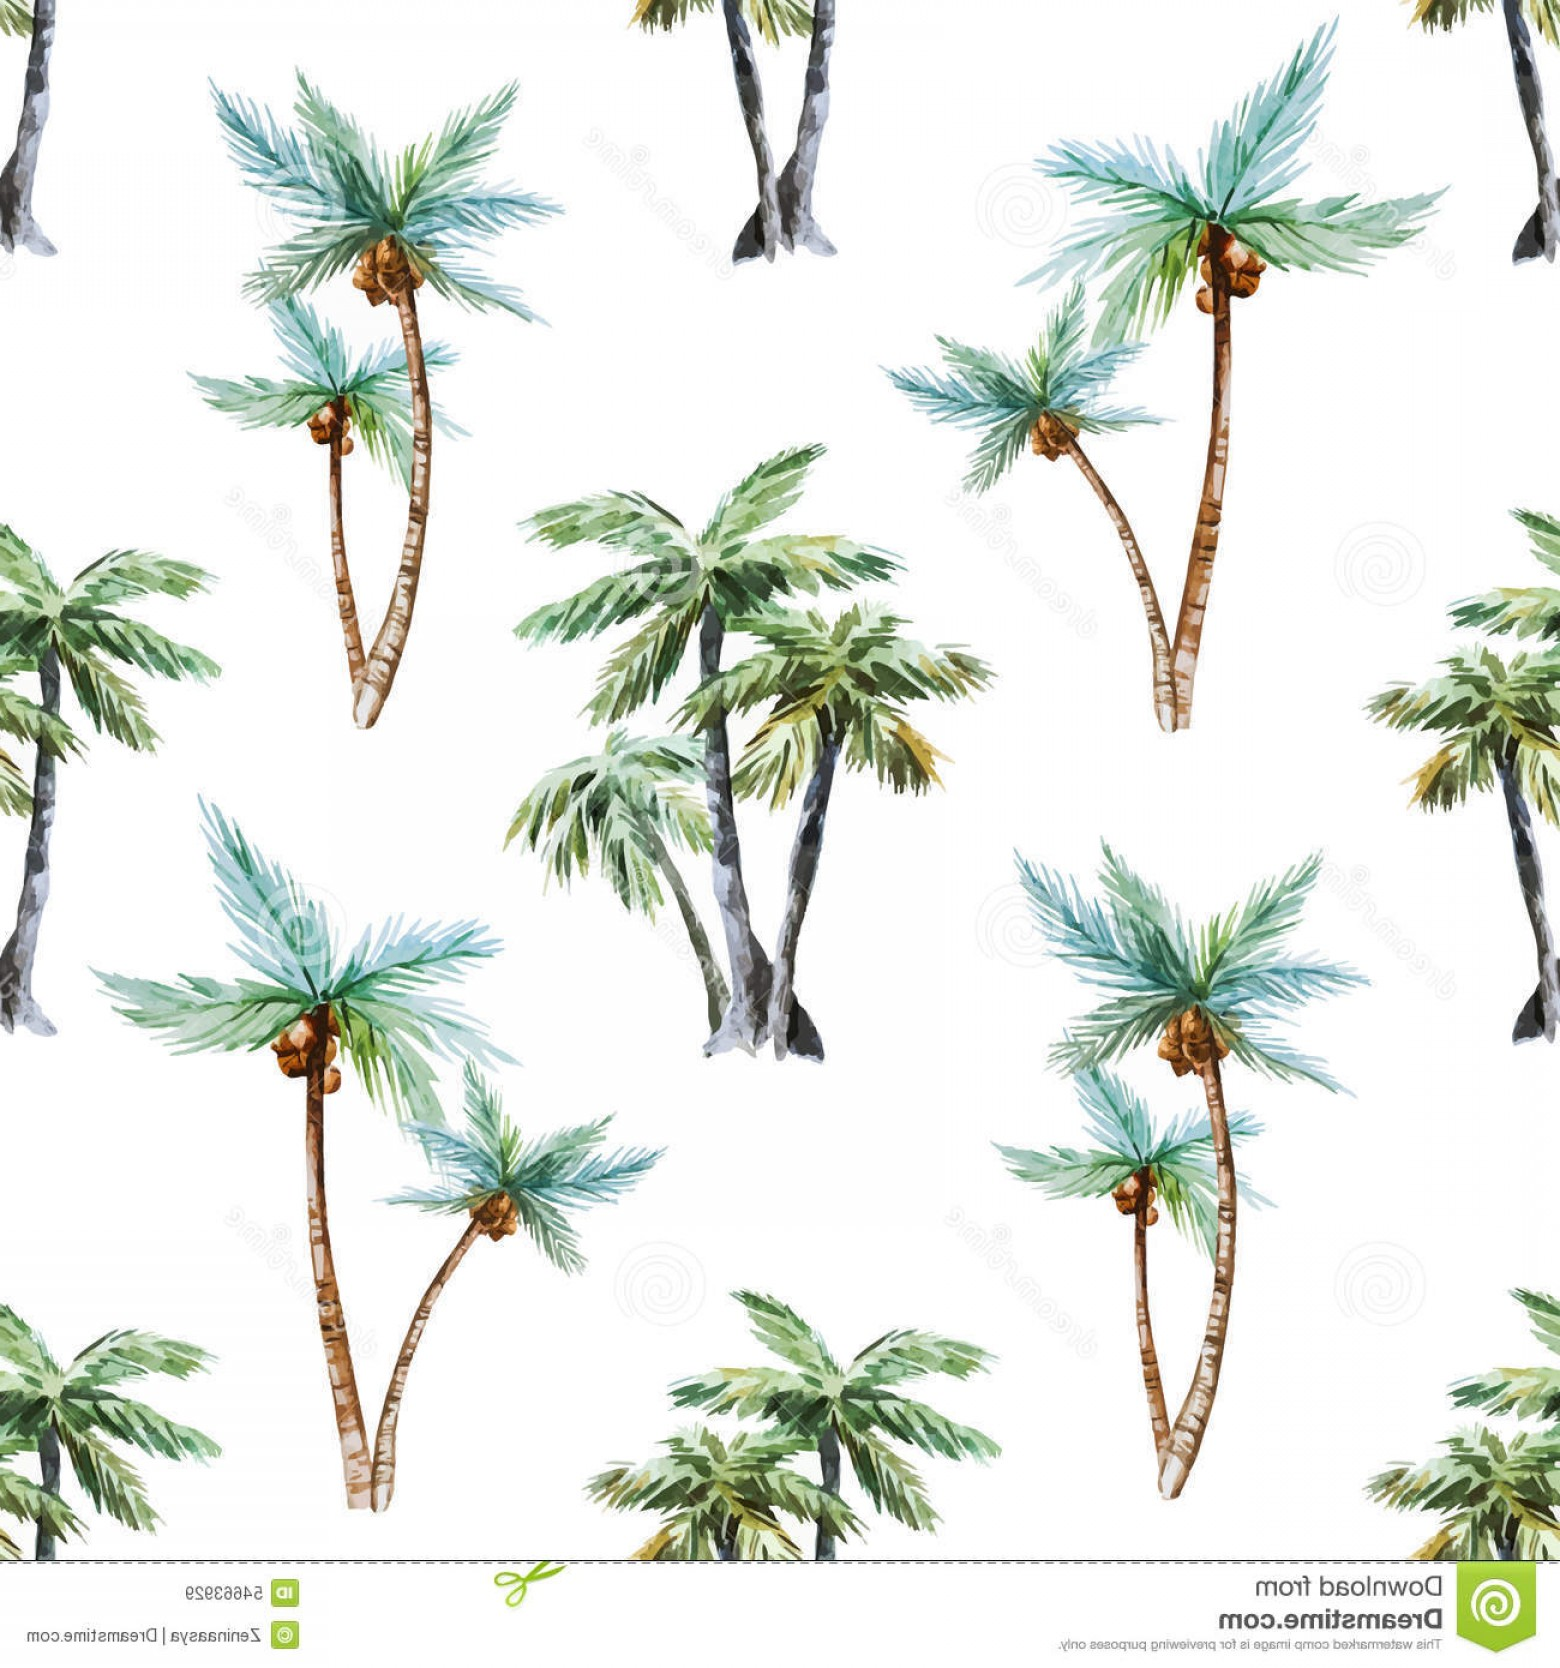 Watercolor Palm Tree Vector: Stock Illustration Watercolor Palm Trees Pattern Beautiful Vector Nice Image